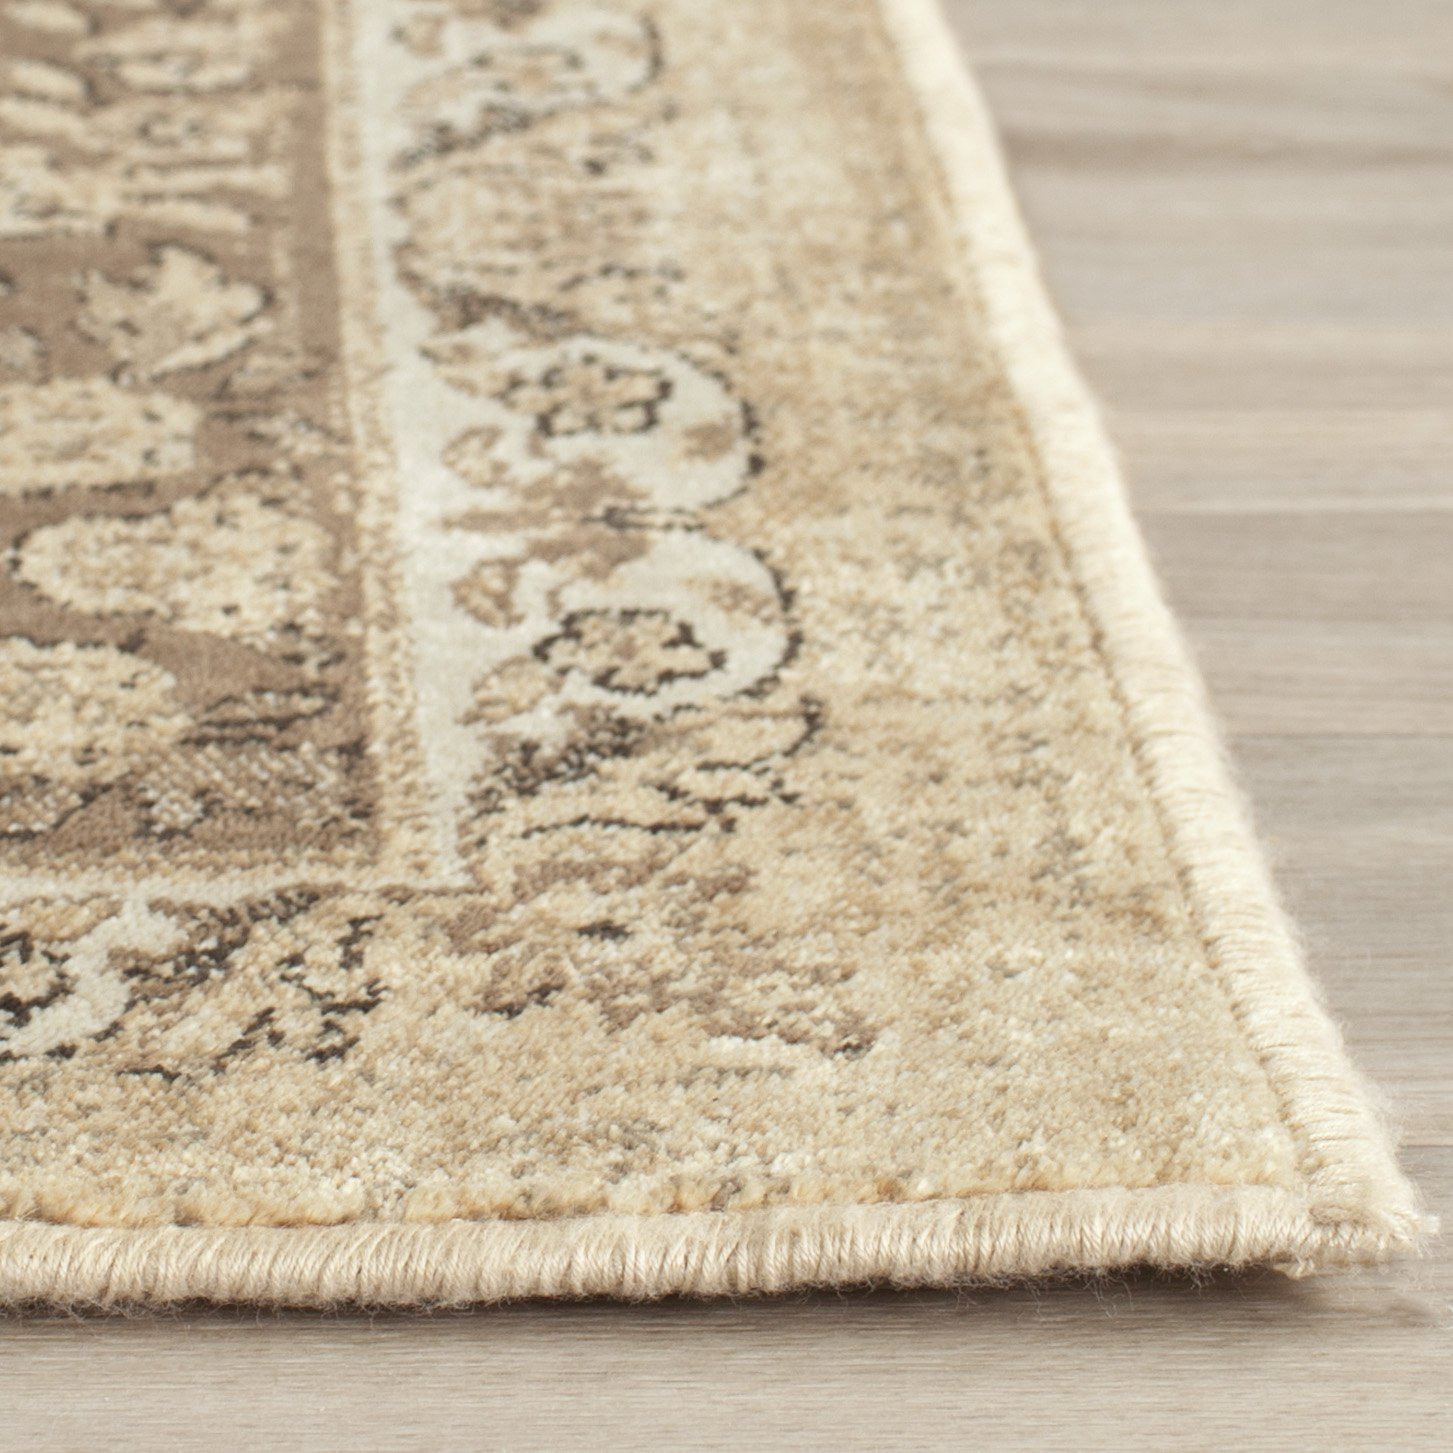 I want to buy a viscose carpet, is it worth it? 58